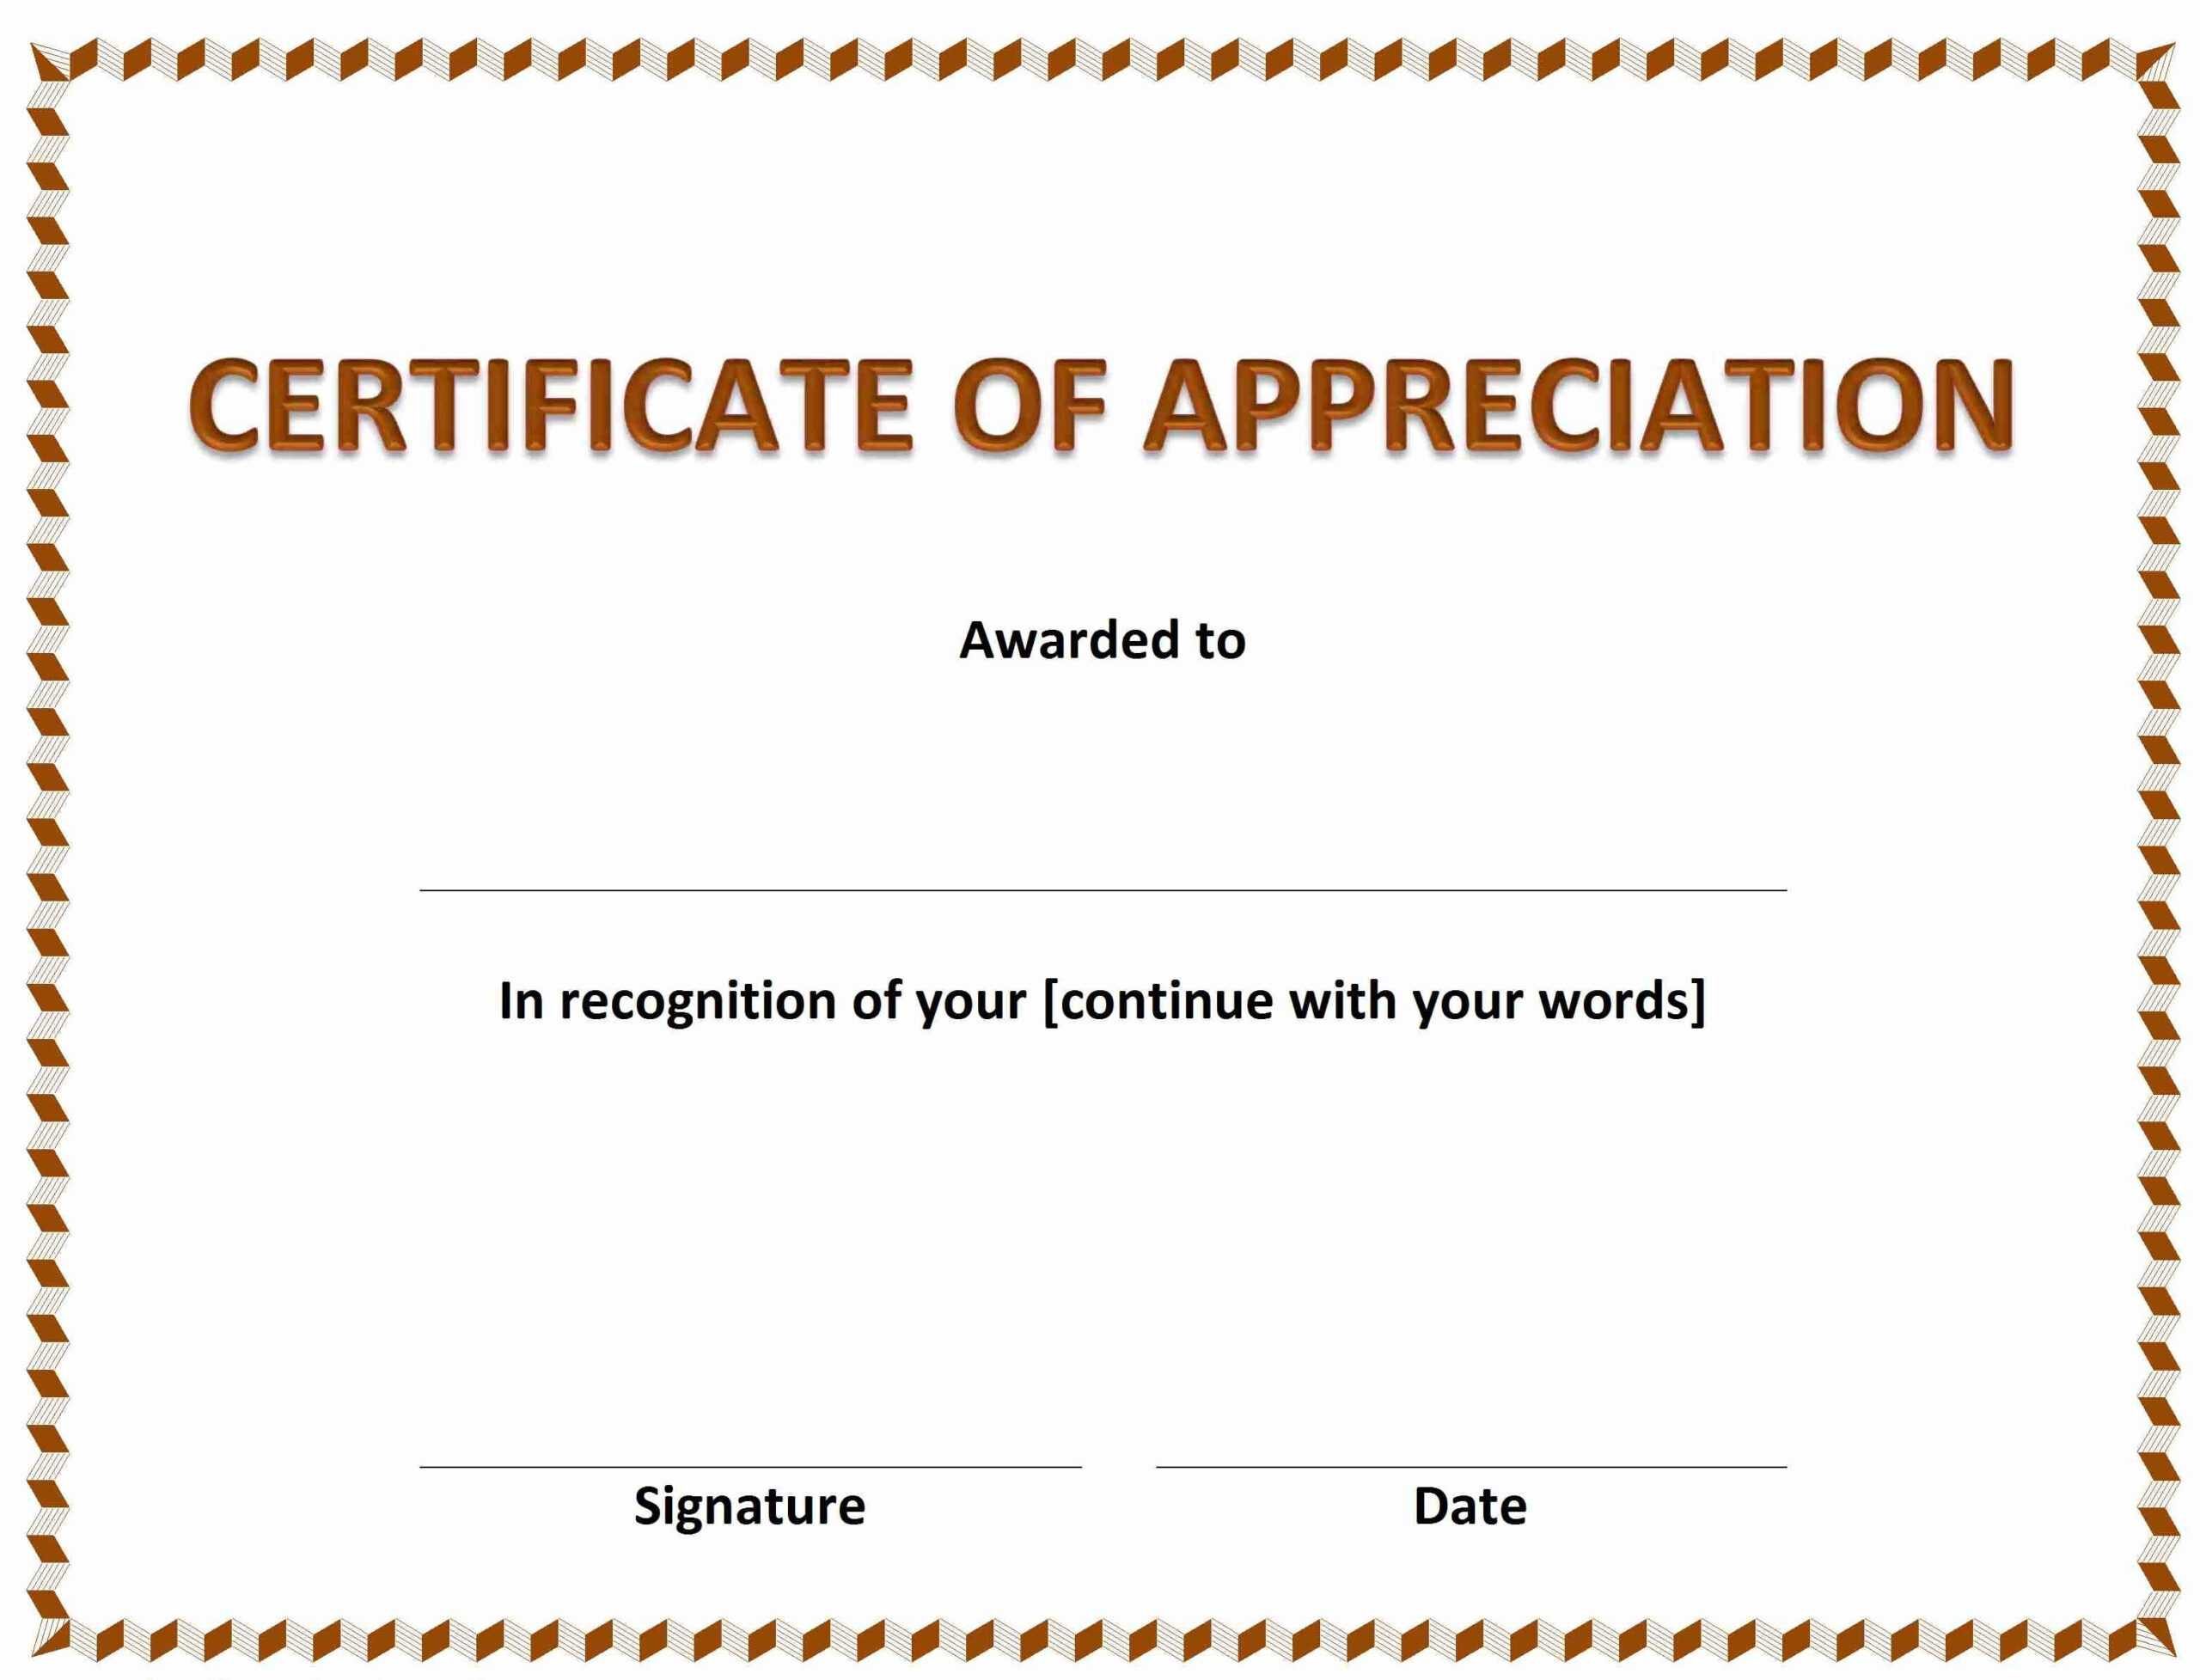 024 Certificates Of Appreciations Popular Ideas Awesome With Free Funny Certificate Templates For Word